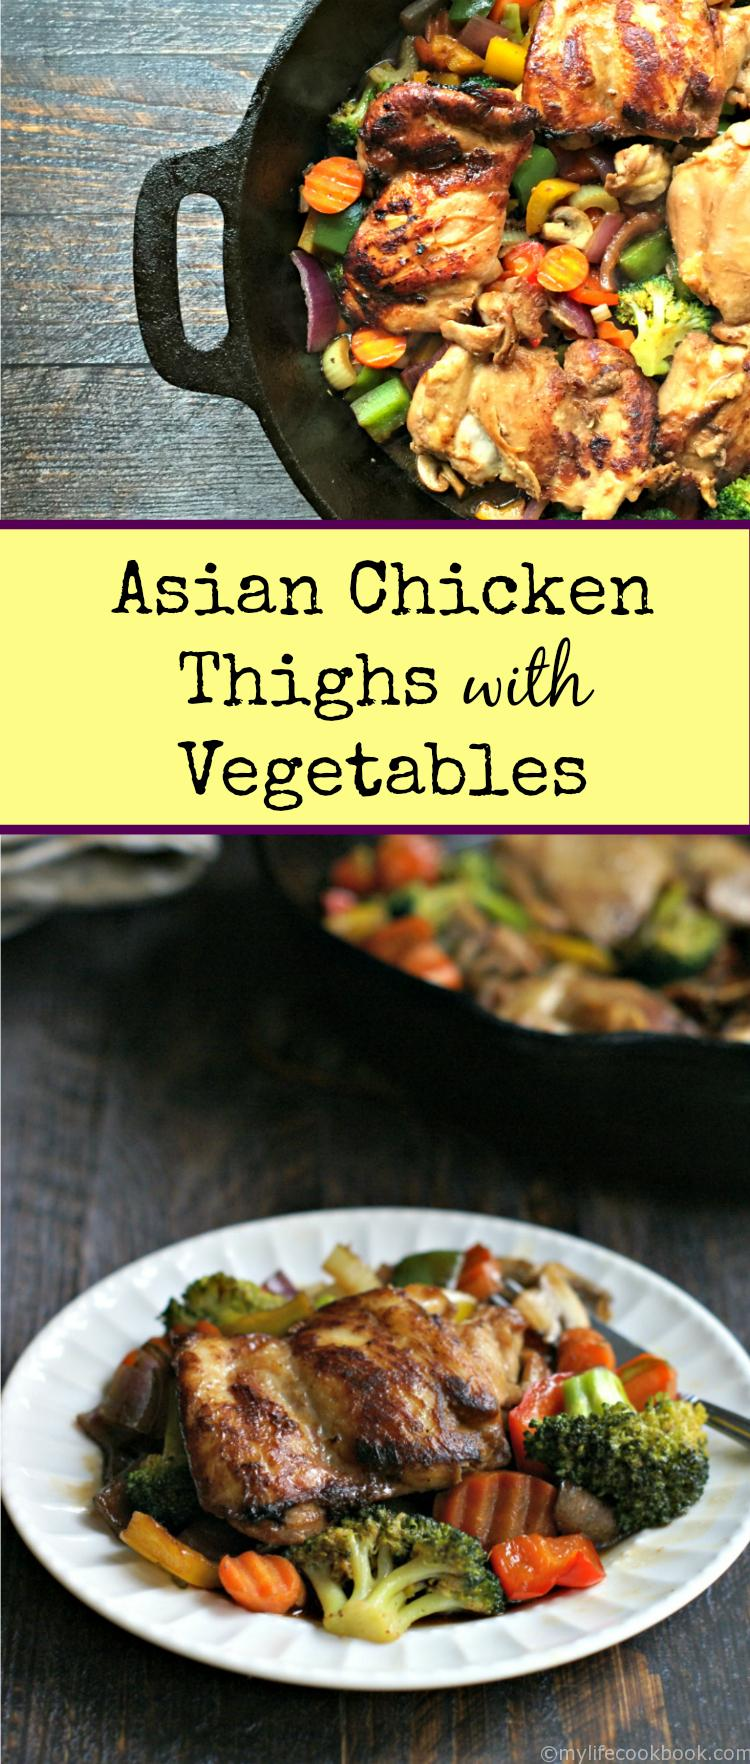 Asian Chicken Thighs with Vegetables